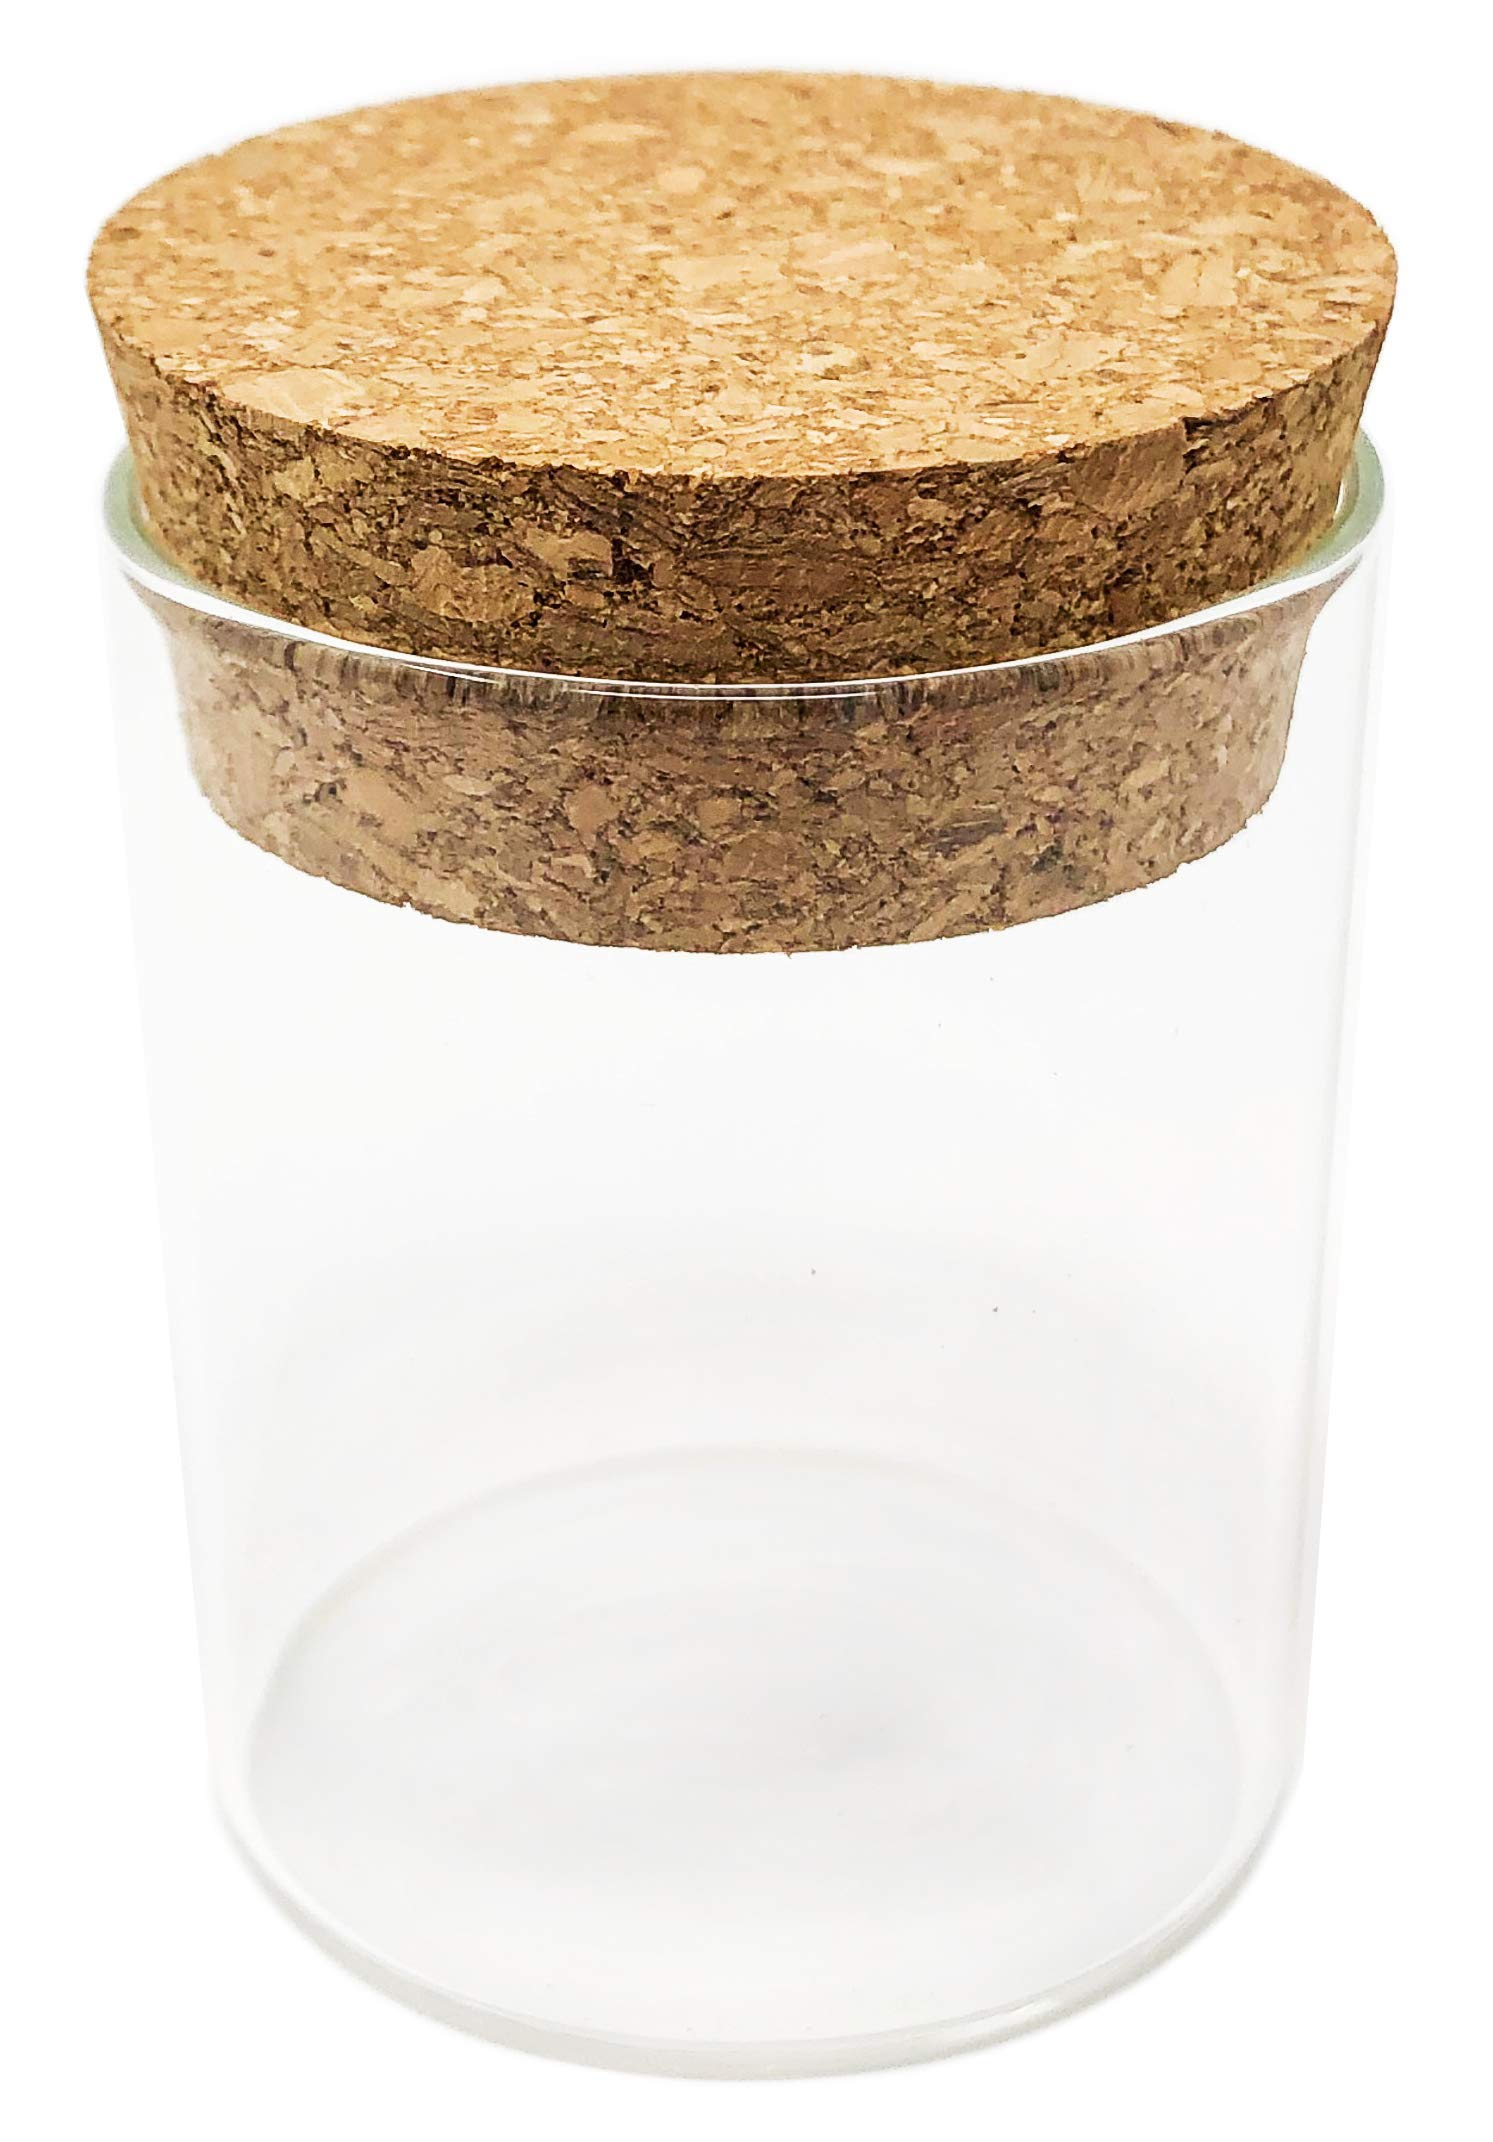 200pcs - 2oz Premium Glass Jars with Cork Lids - 3'' tall x 2'' wide - For Spices, Gifts, Candles, Crafts, Kitchen, and more